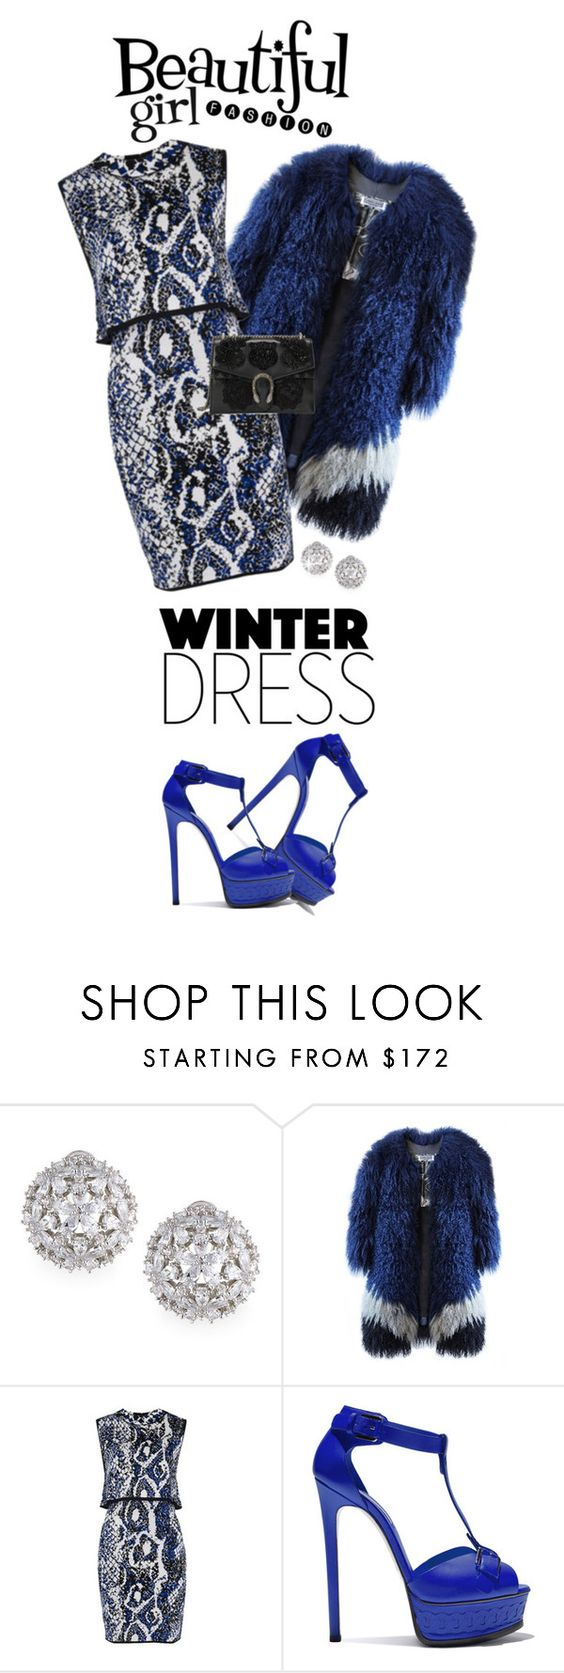 """""""Winter Dresses Under $100"""" by shortyluv718 ❤ liked on Polyvore featuring Fallon, French Connection, Casadei, Gucci and under100"""